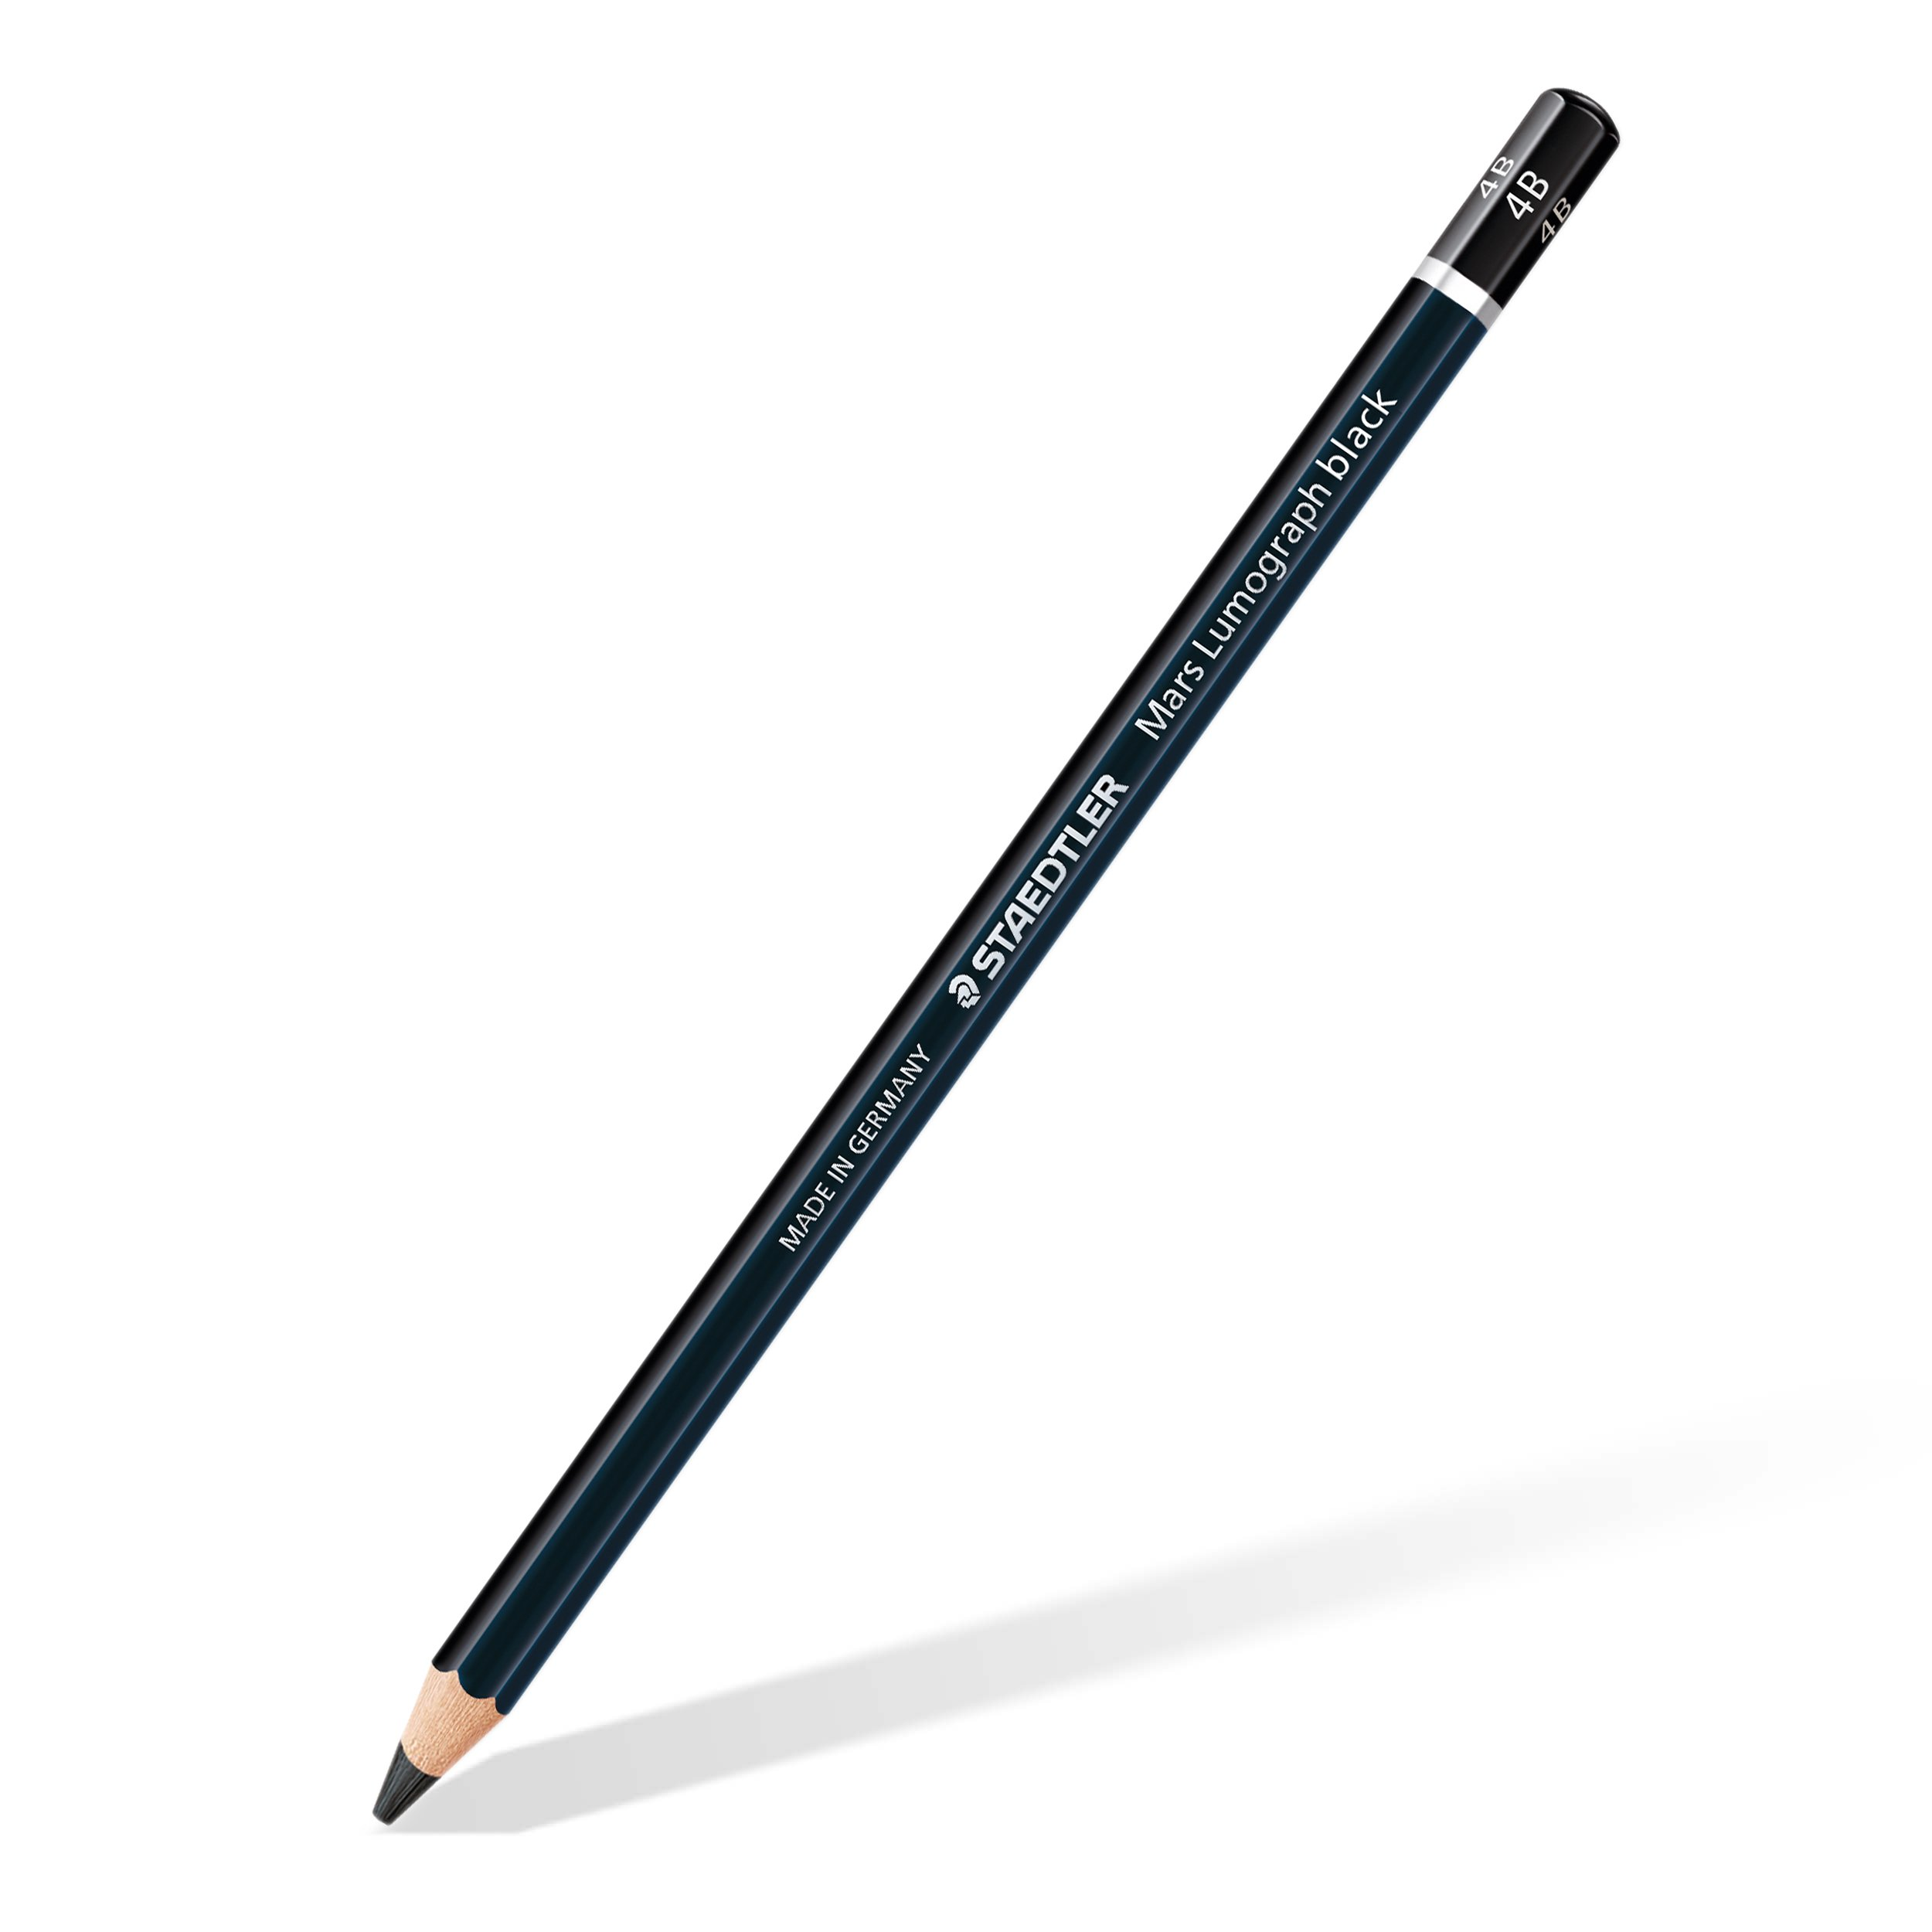 Staedtler Mars Lumograph 100B-4B Premium Quality Pencil 4B Box of 12, Black